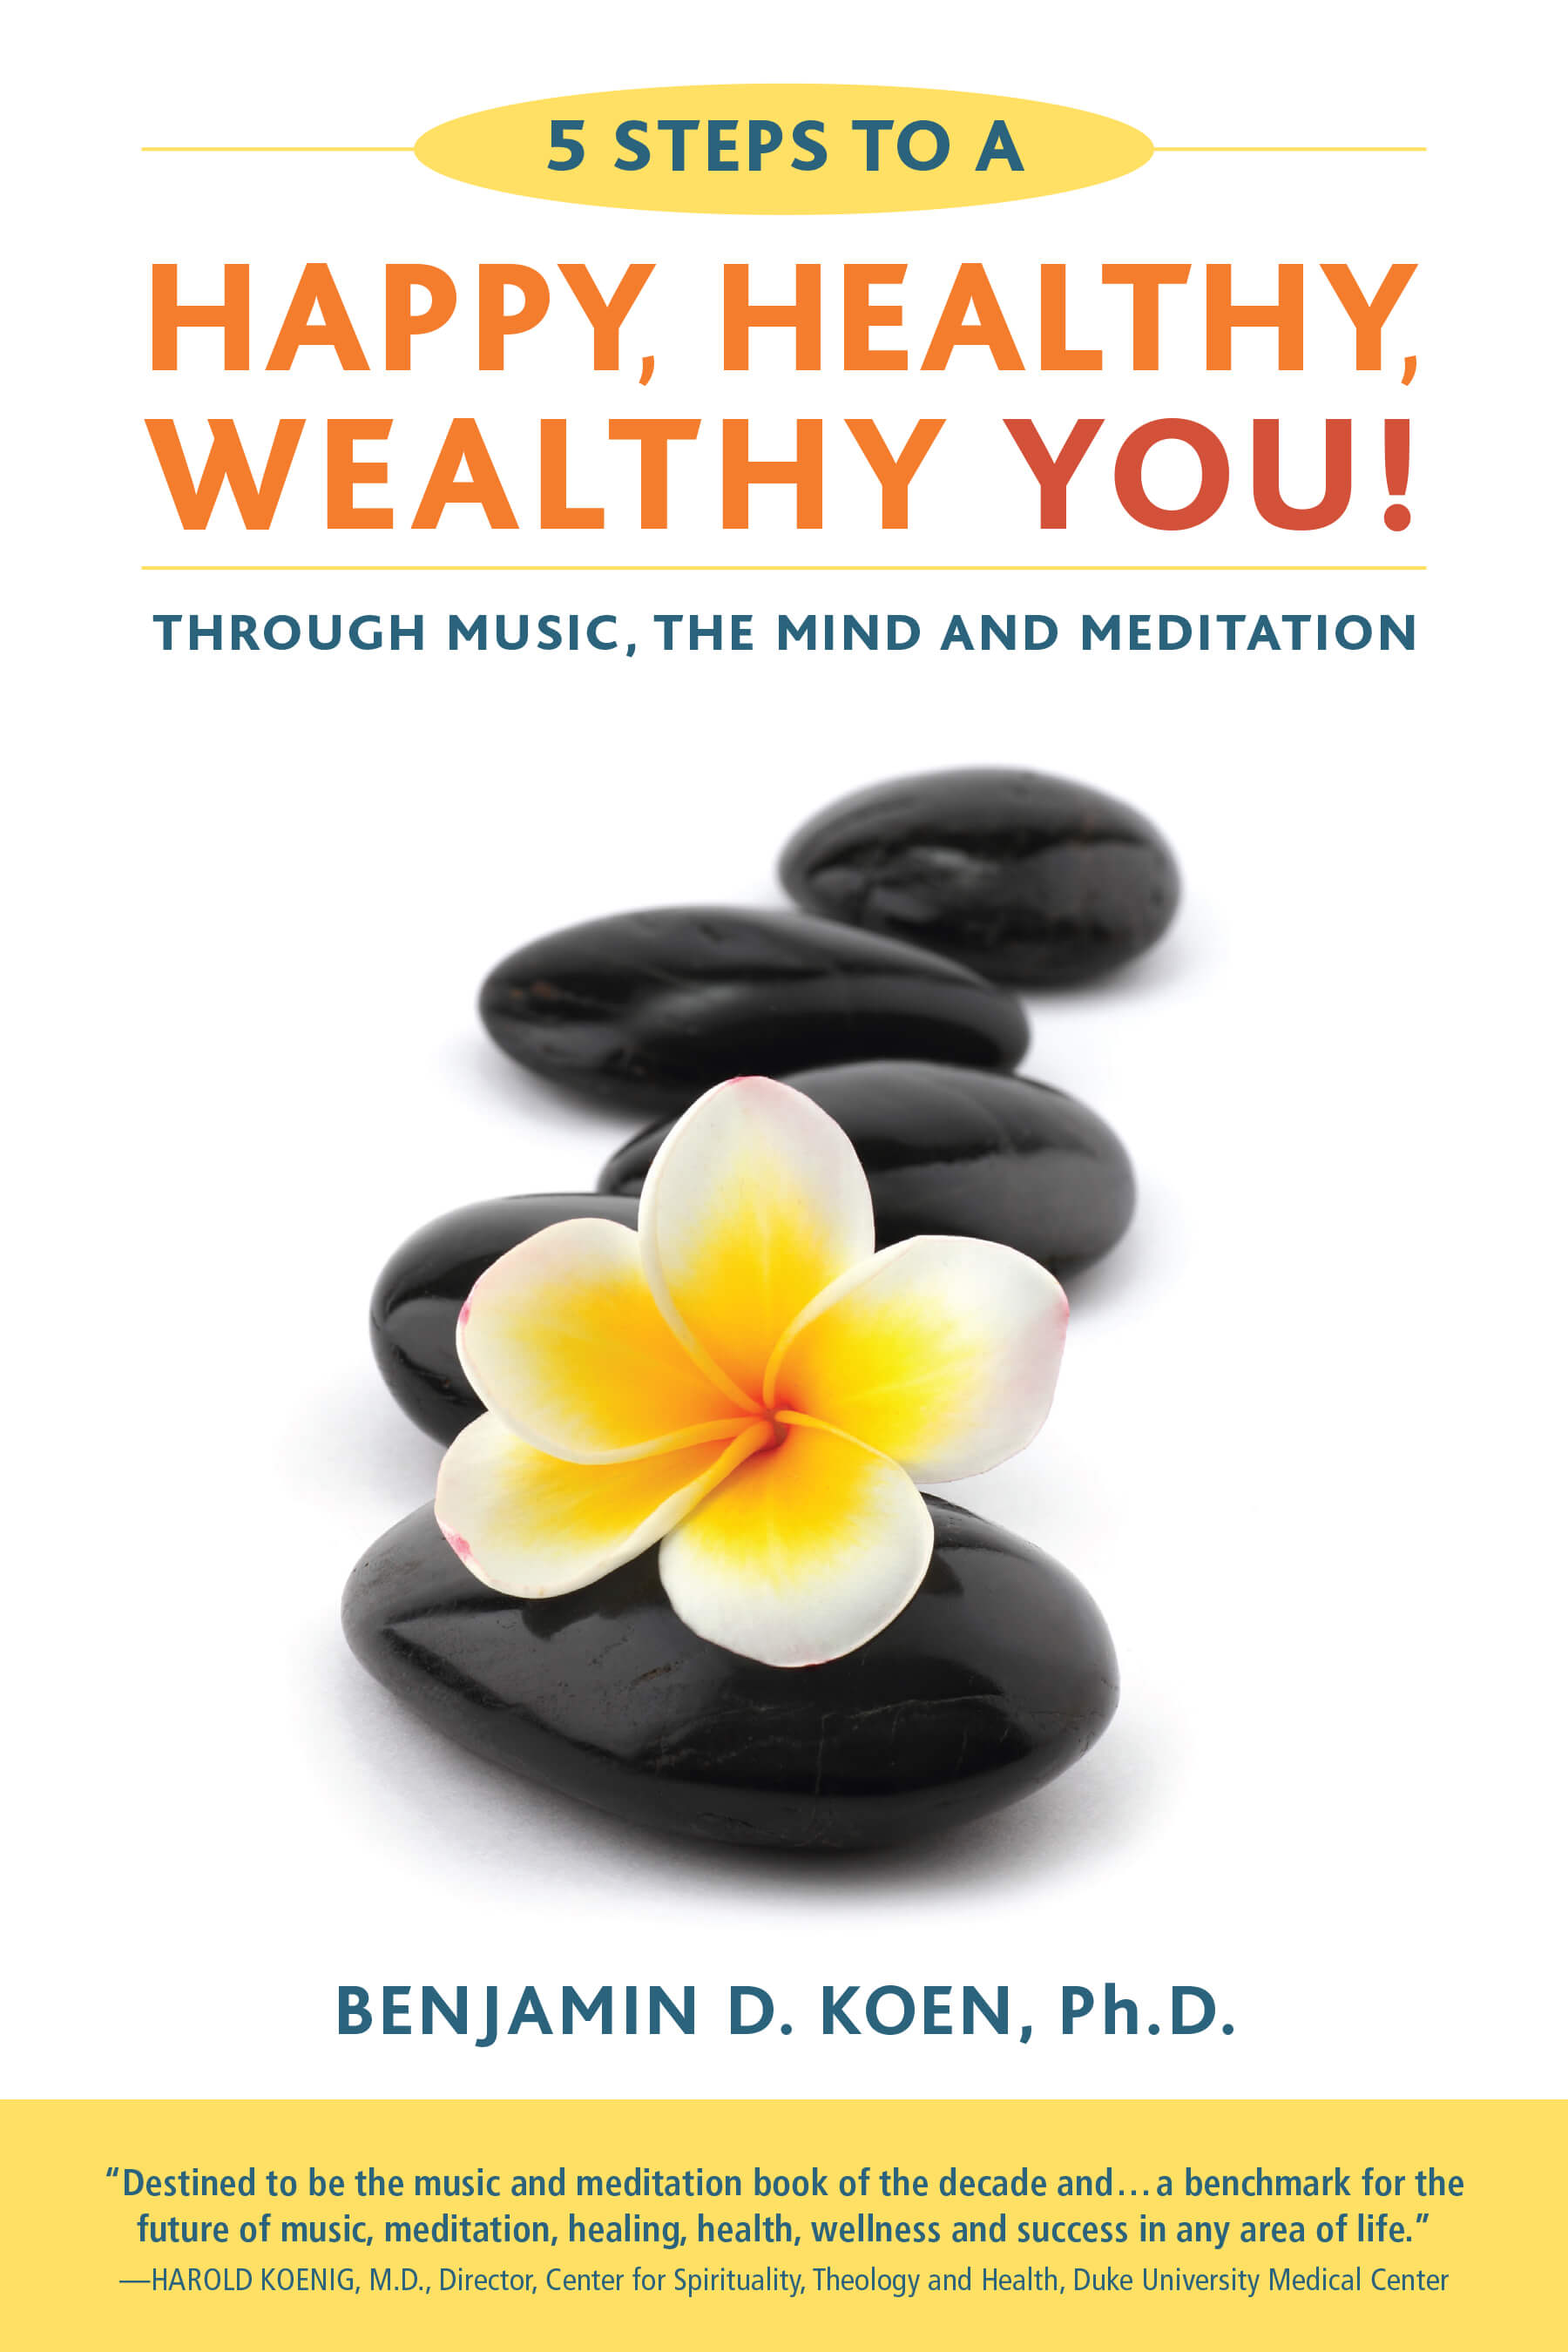 Instantly improve your life with 5 Steps to a Happy, Healthy, Wealthy YOU!